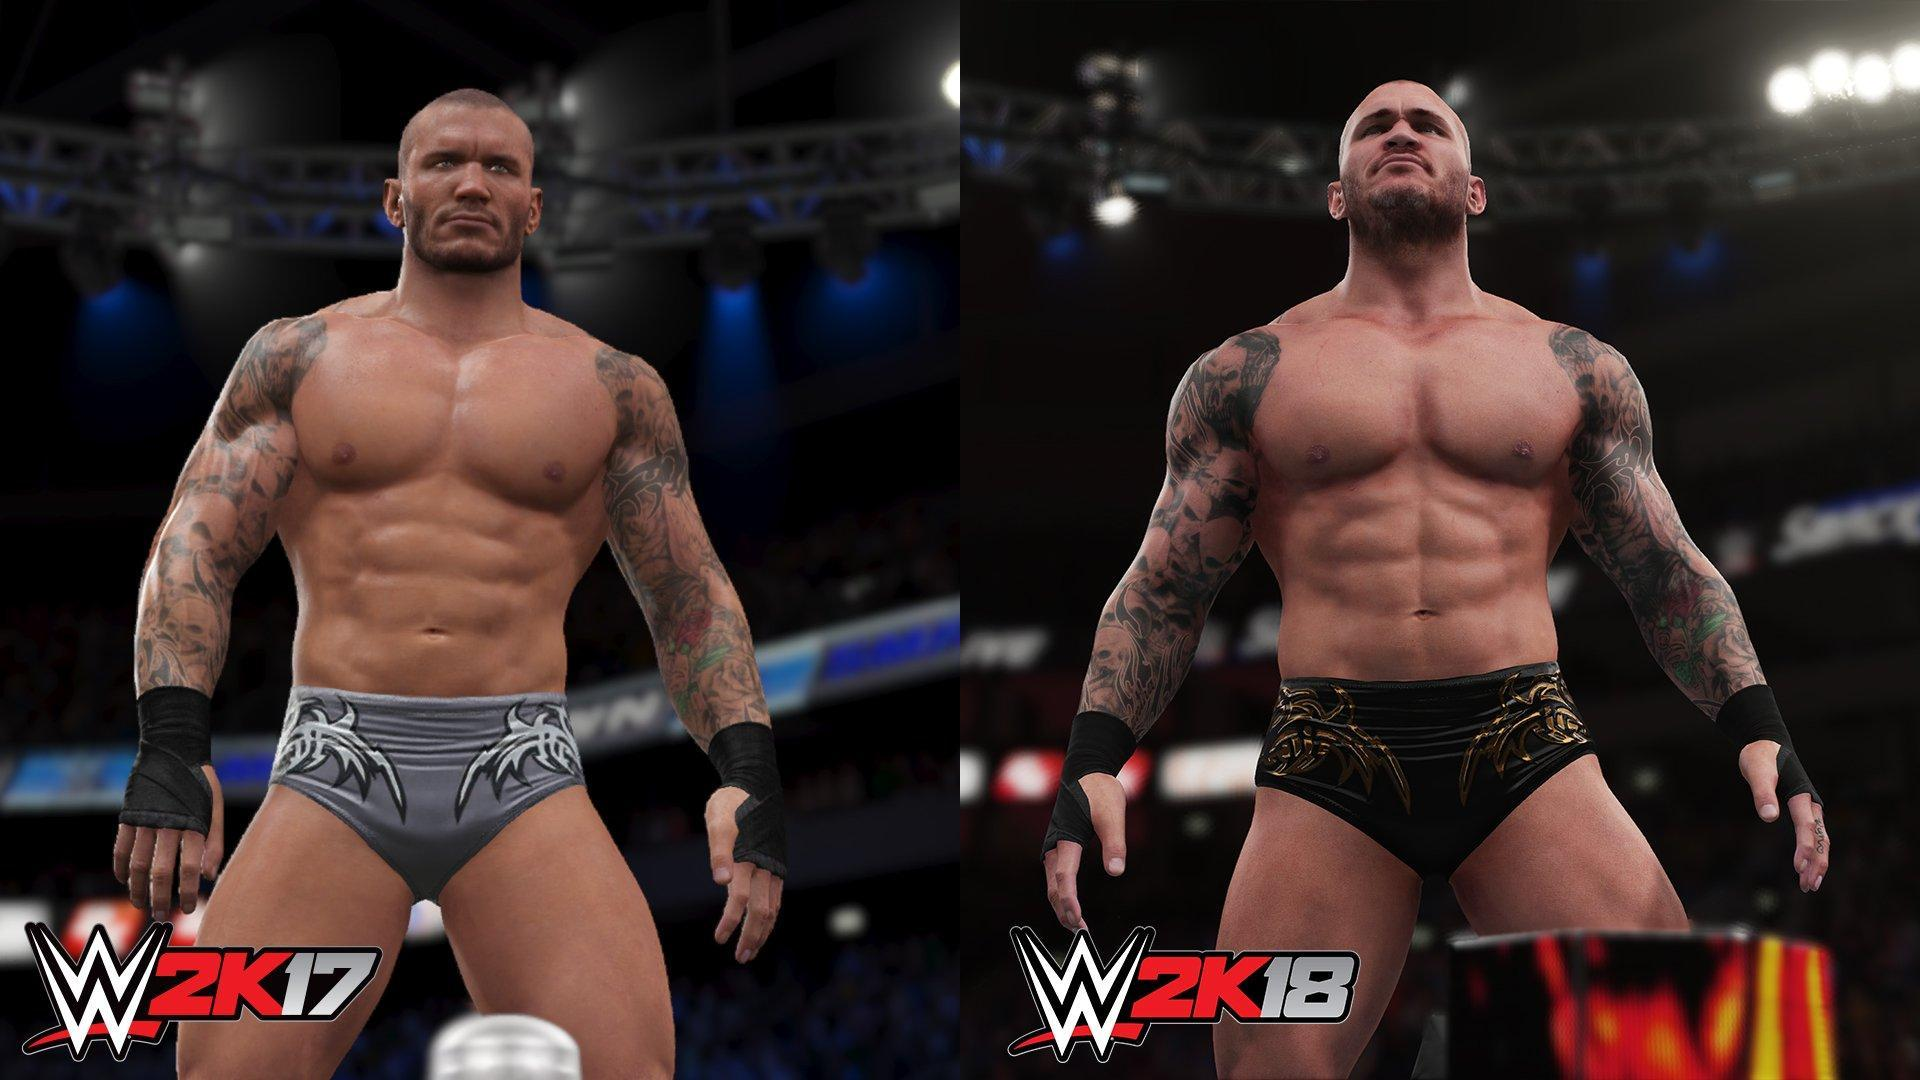 WWE2K18 vs 2K17 Randy Orton Graphics Comparison